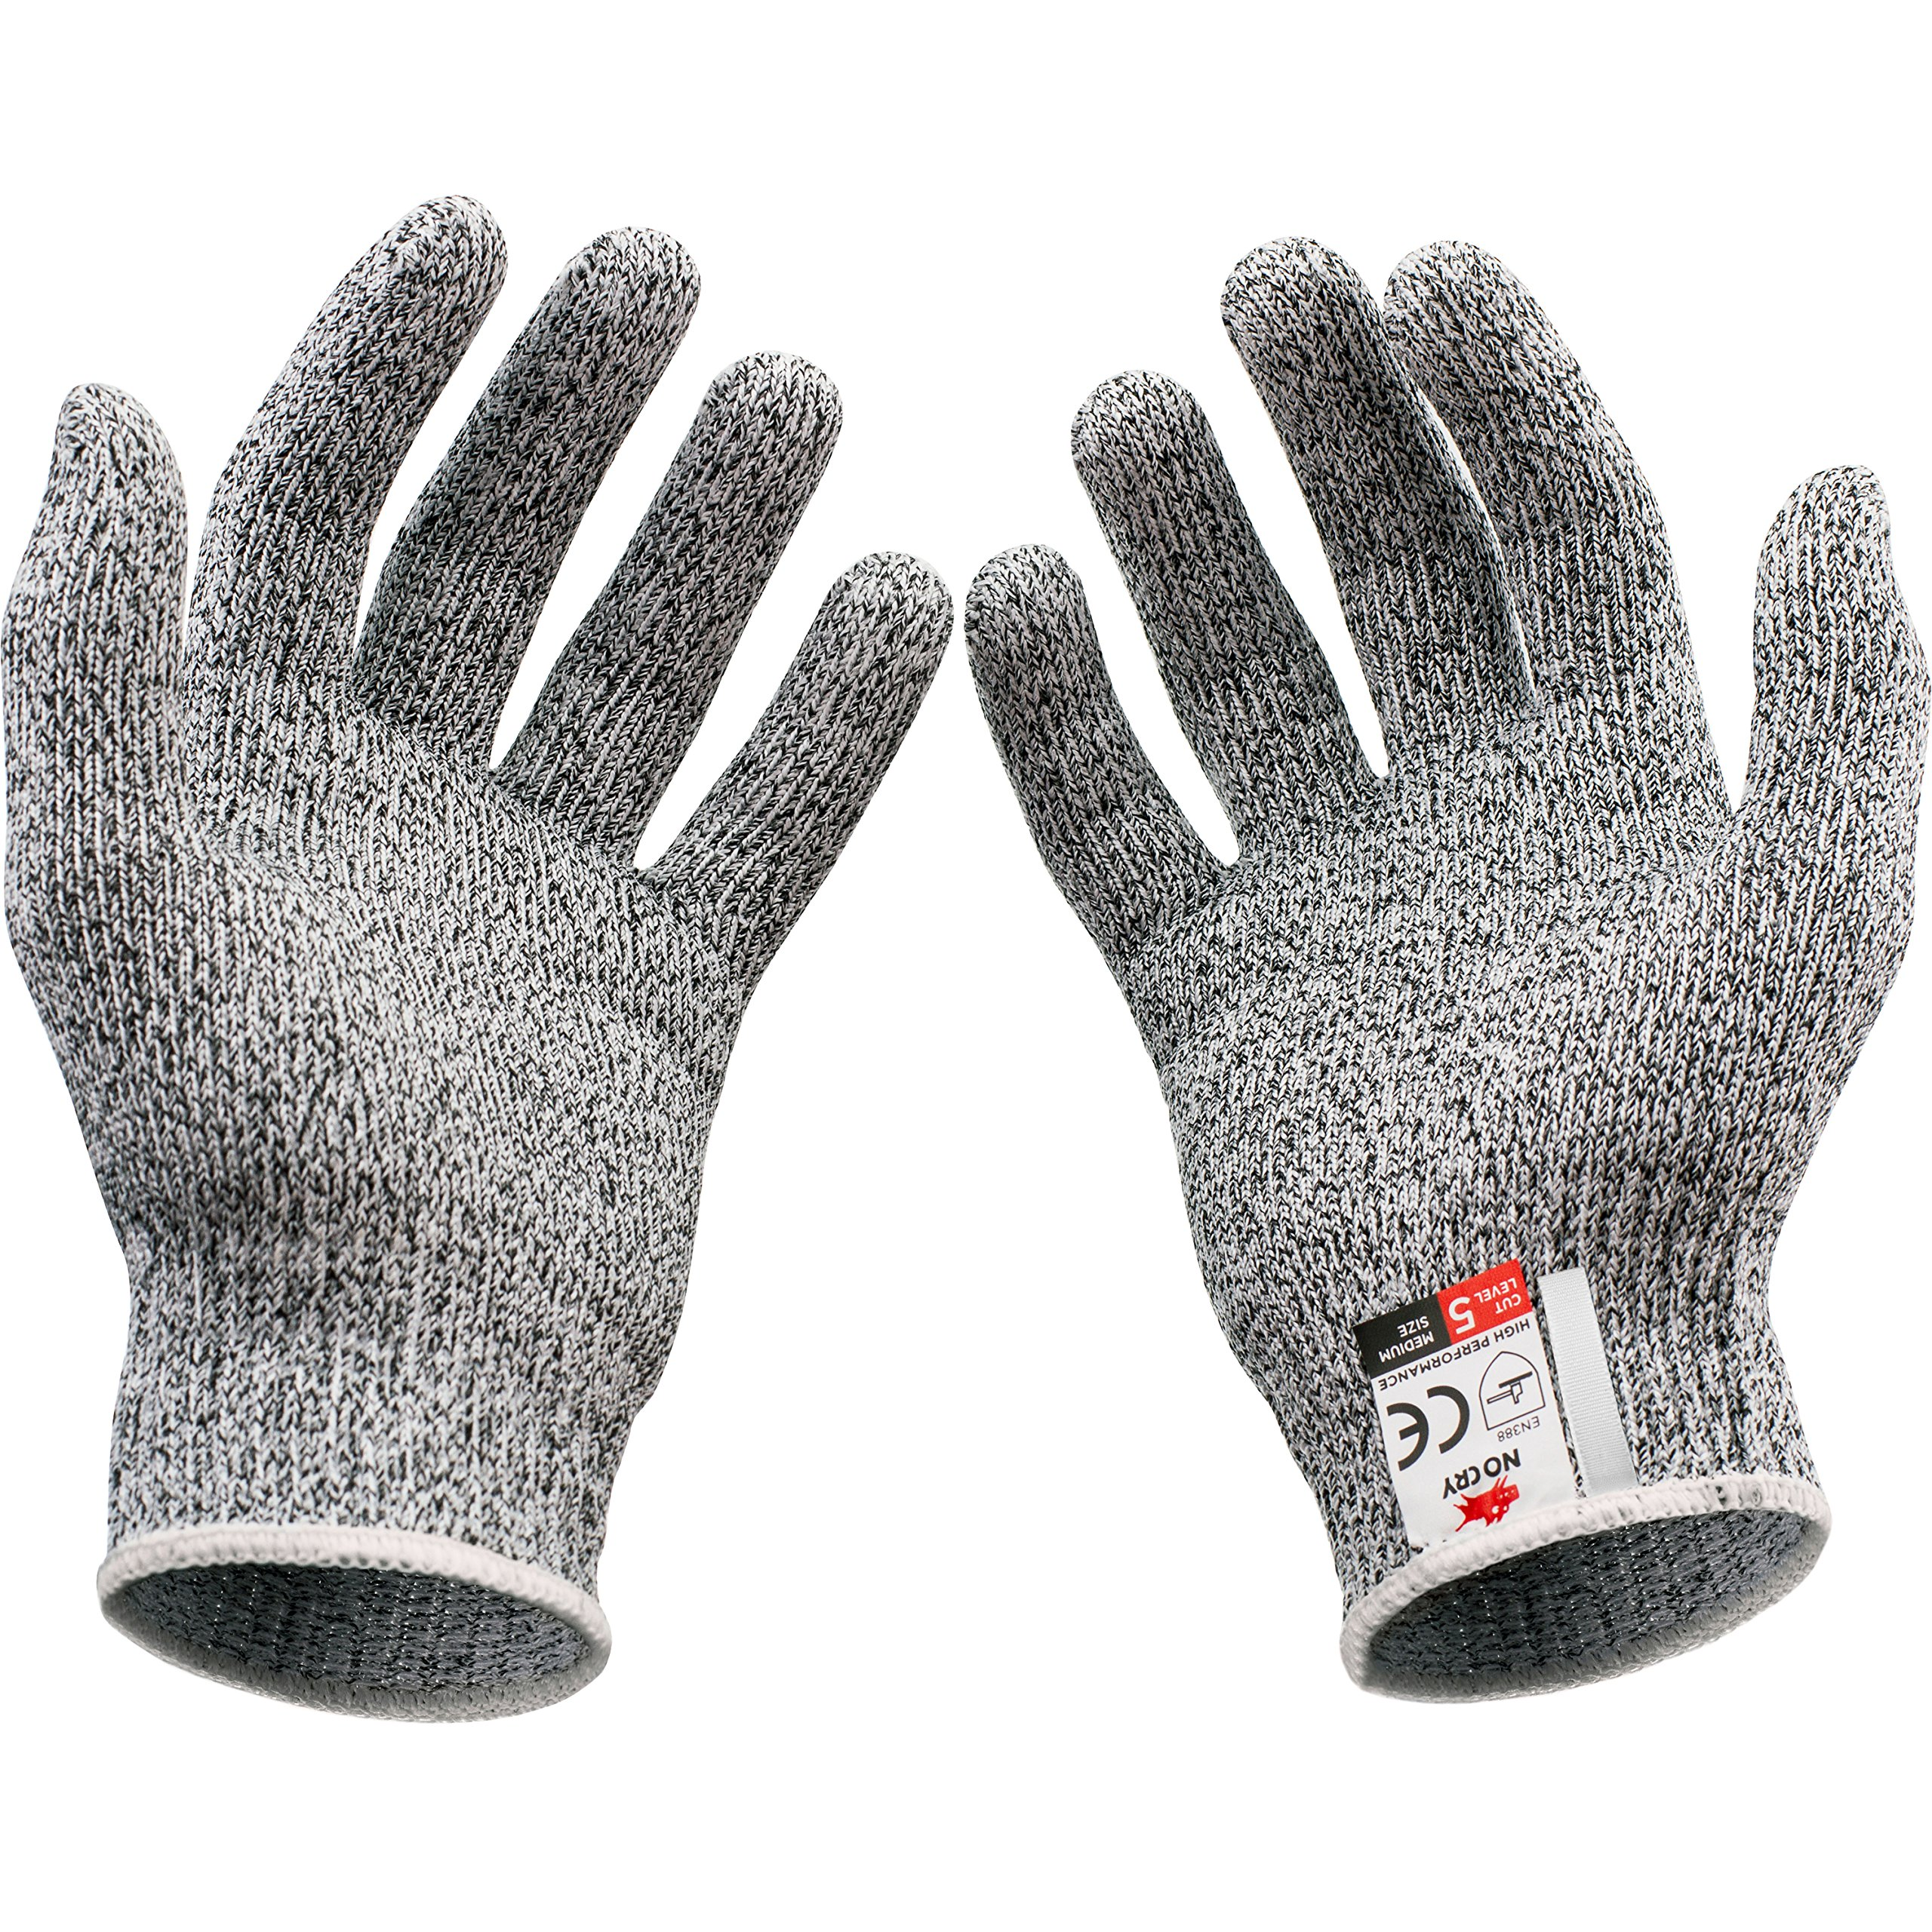 NoCry Cut Resistant Gloves - High Performance Level 5 Protection, Food Grade. Size Medium, Free Ebook Included! by NoCry (Image #8)